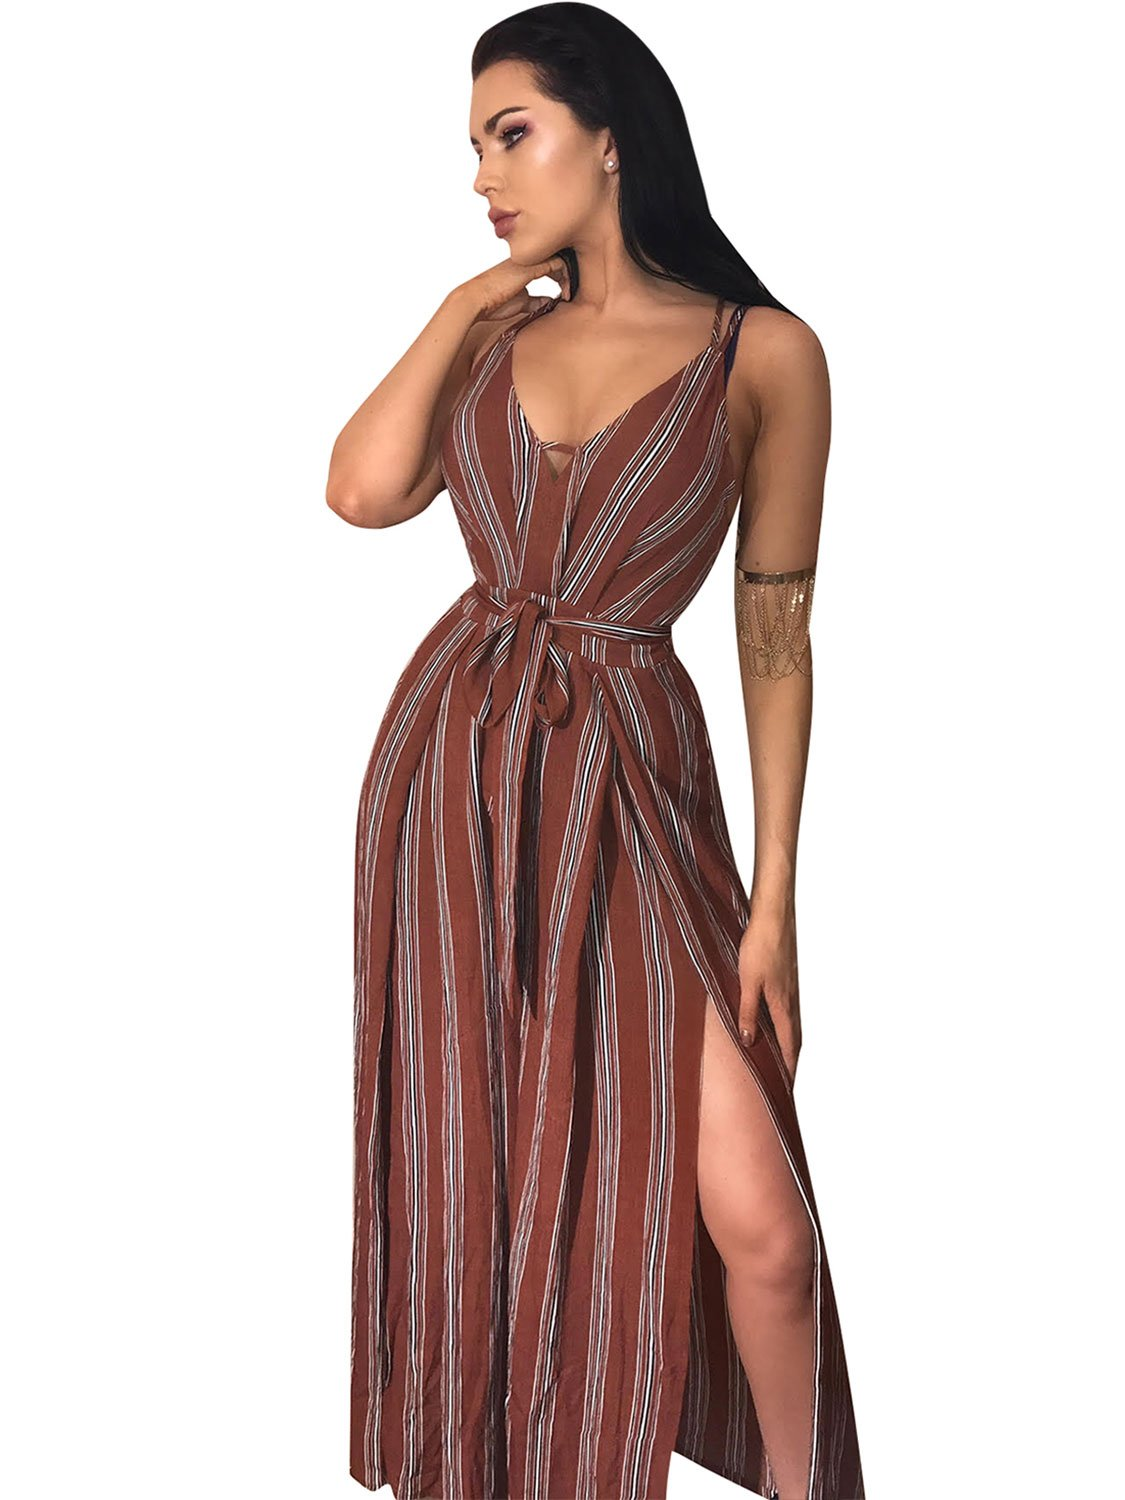 Glamaker Women's Sexy Backless V Neck Stripped Wide Leg Long Jumpsuits with High Splits, Reddish Brown, 10